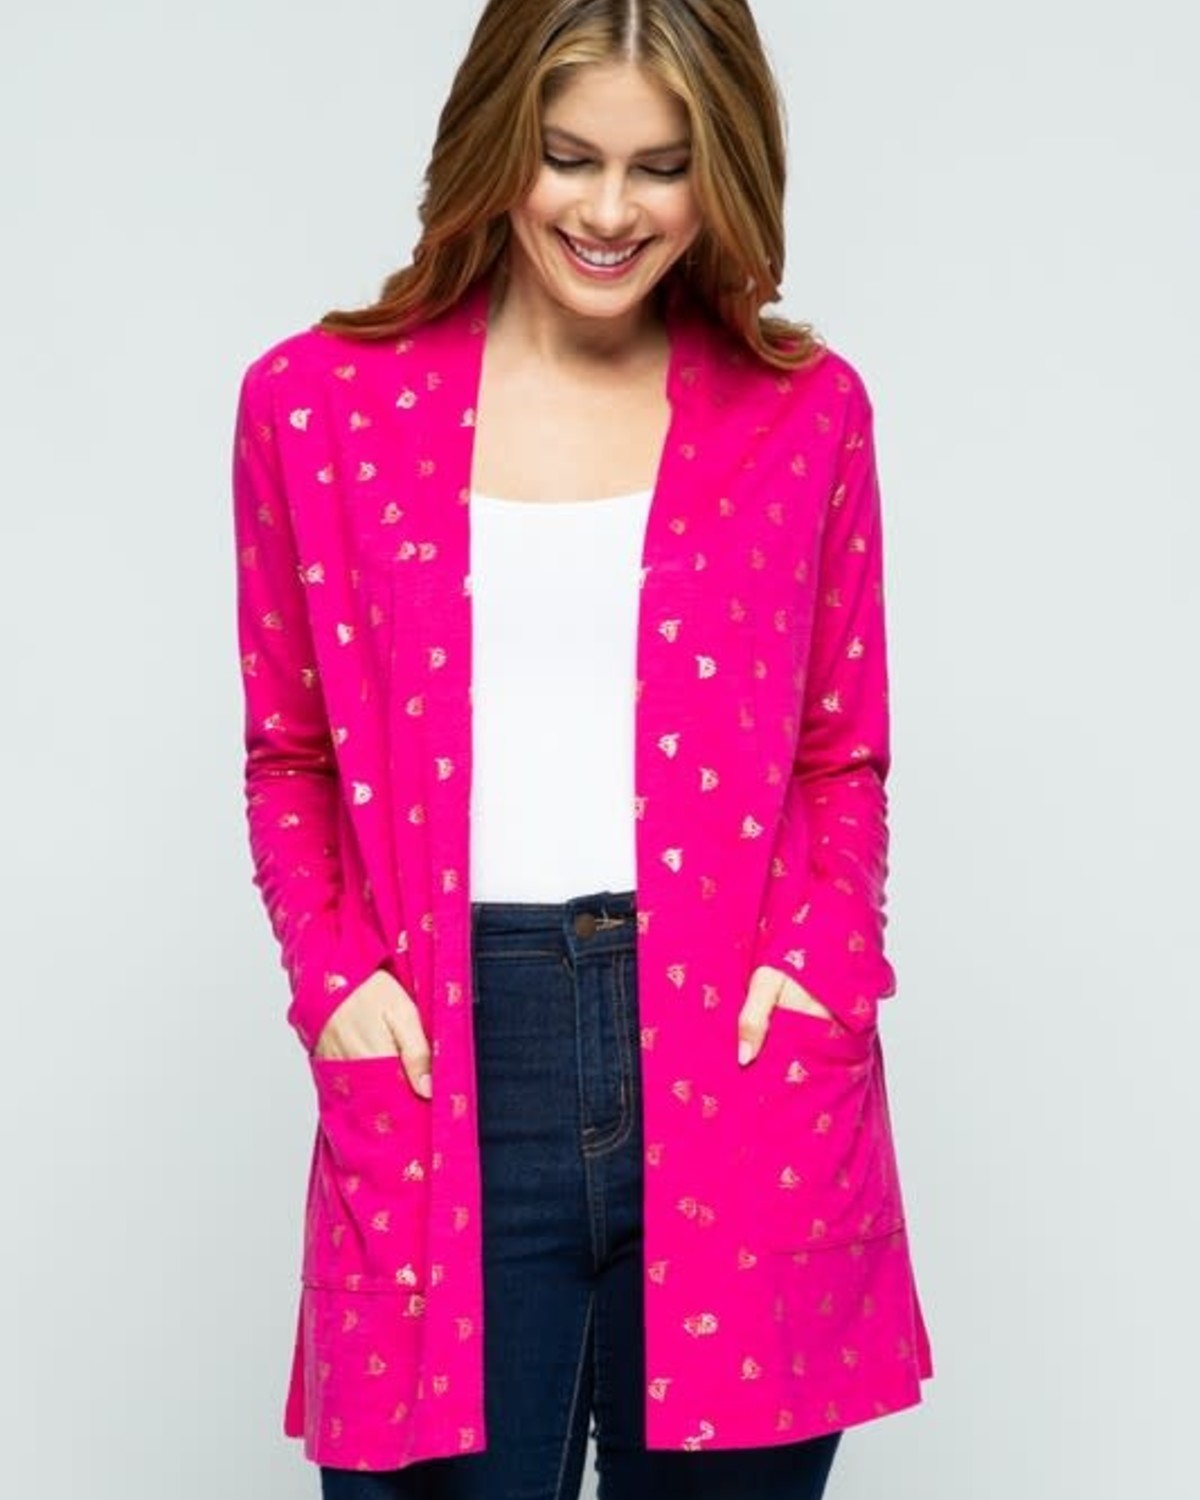 Summer Berry Print Open Front Knit Cardigan